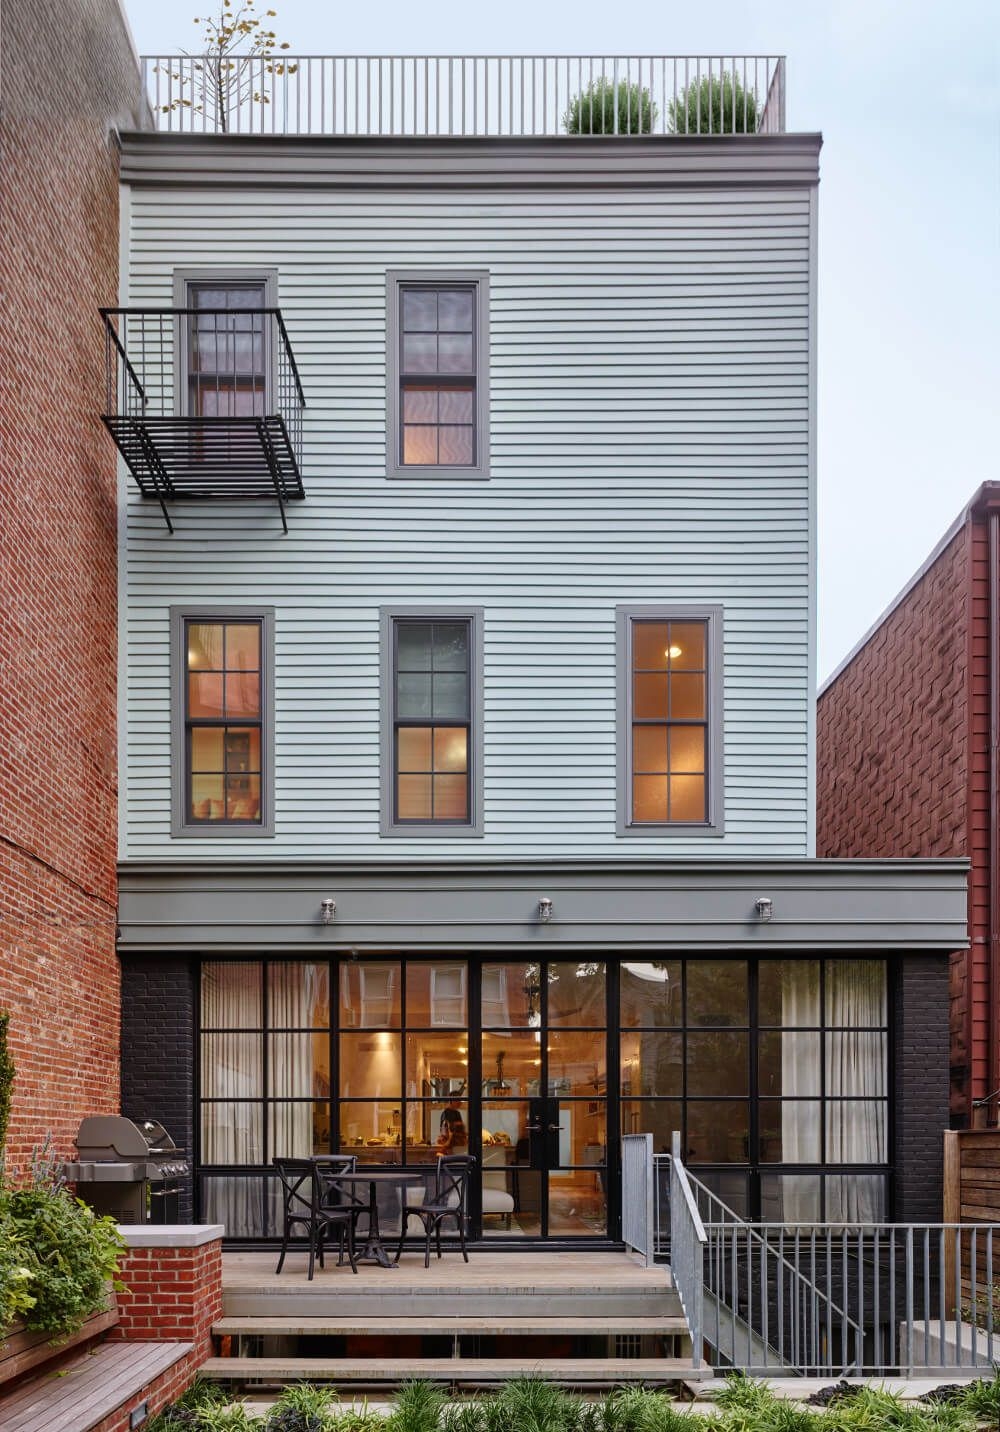 Greenpoint row house modern home in new york by delson or  on dwell also east williamsburg rowhouse  wood frame rh pinterest